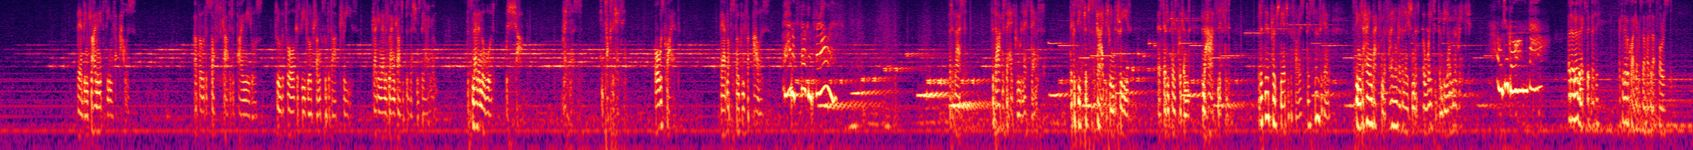 Work Is A Four Letter Word - 4 - Spectrogram.jpg